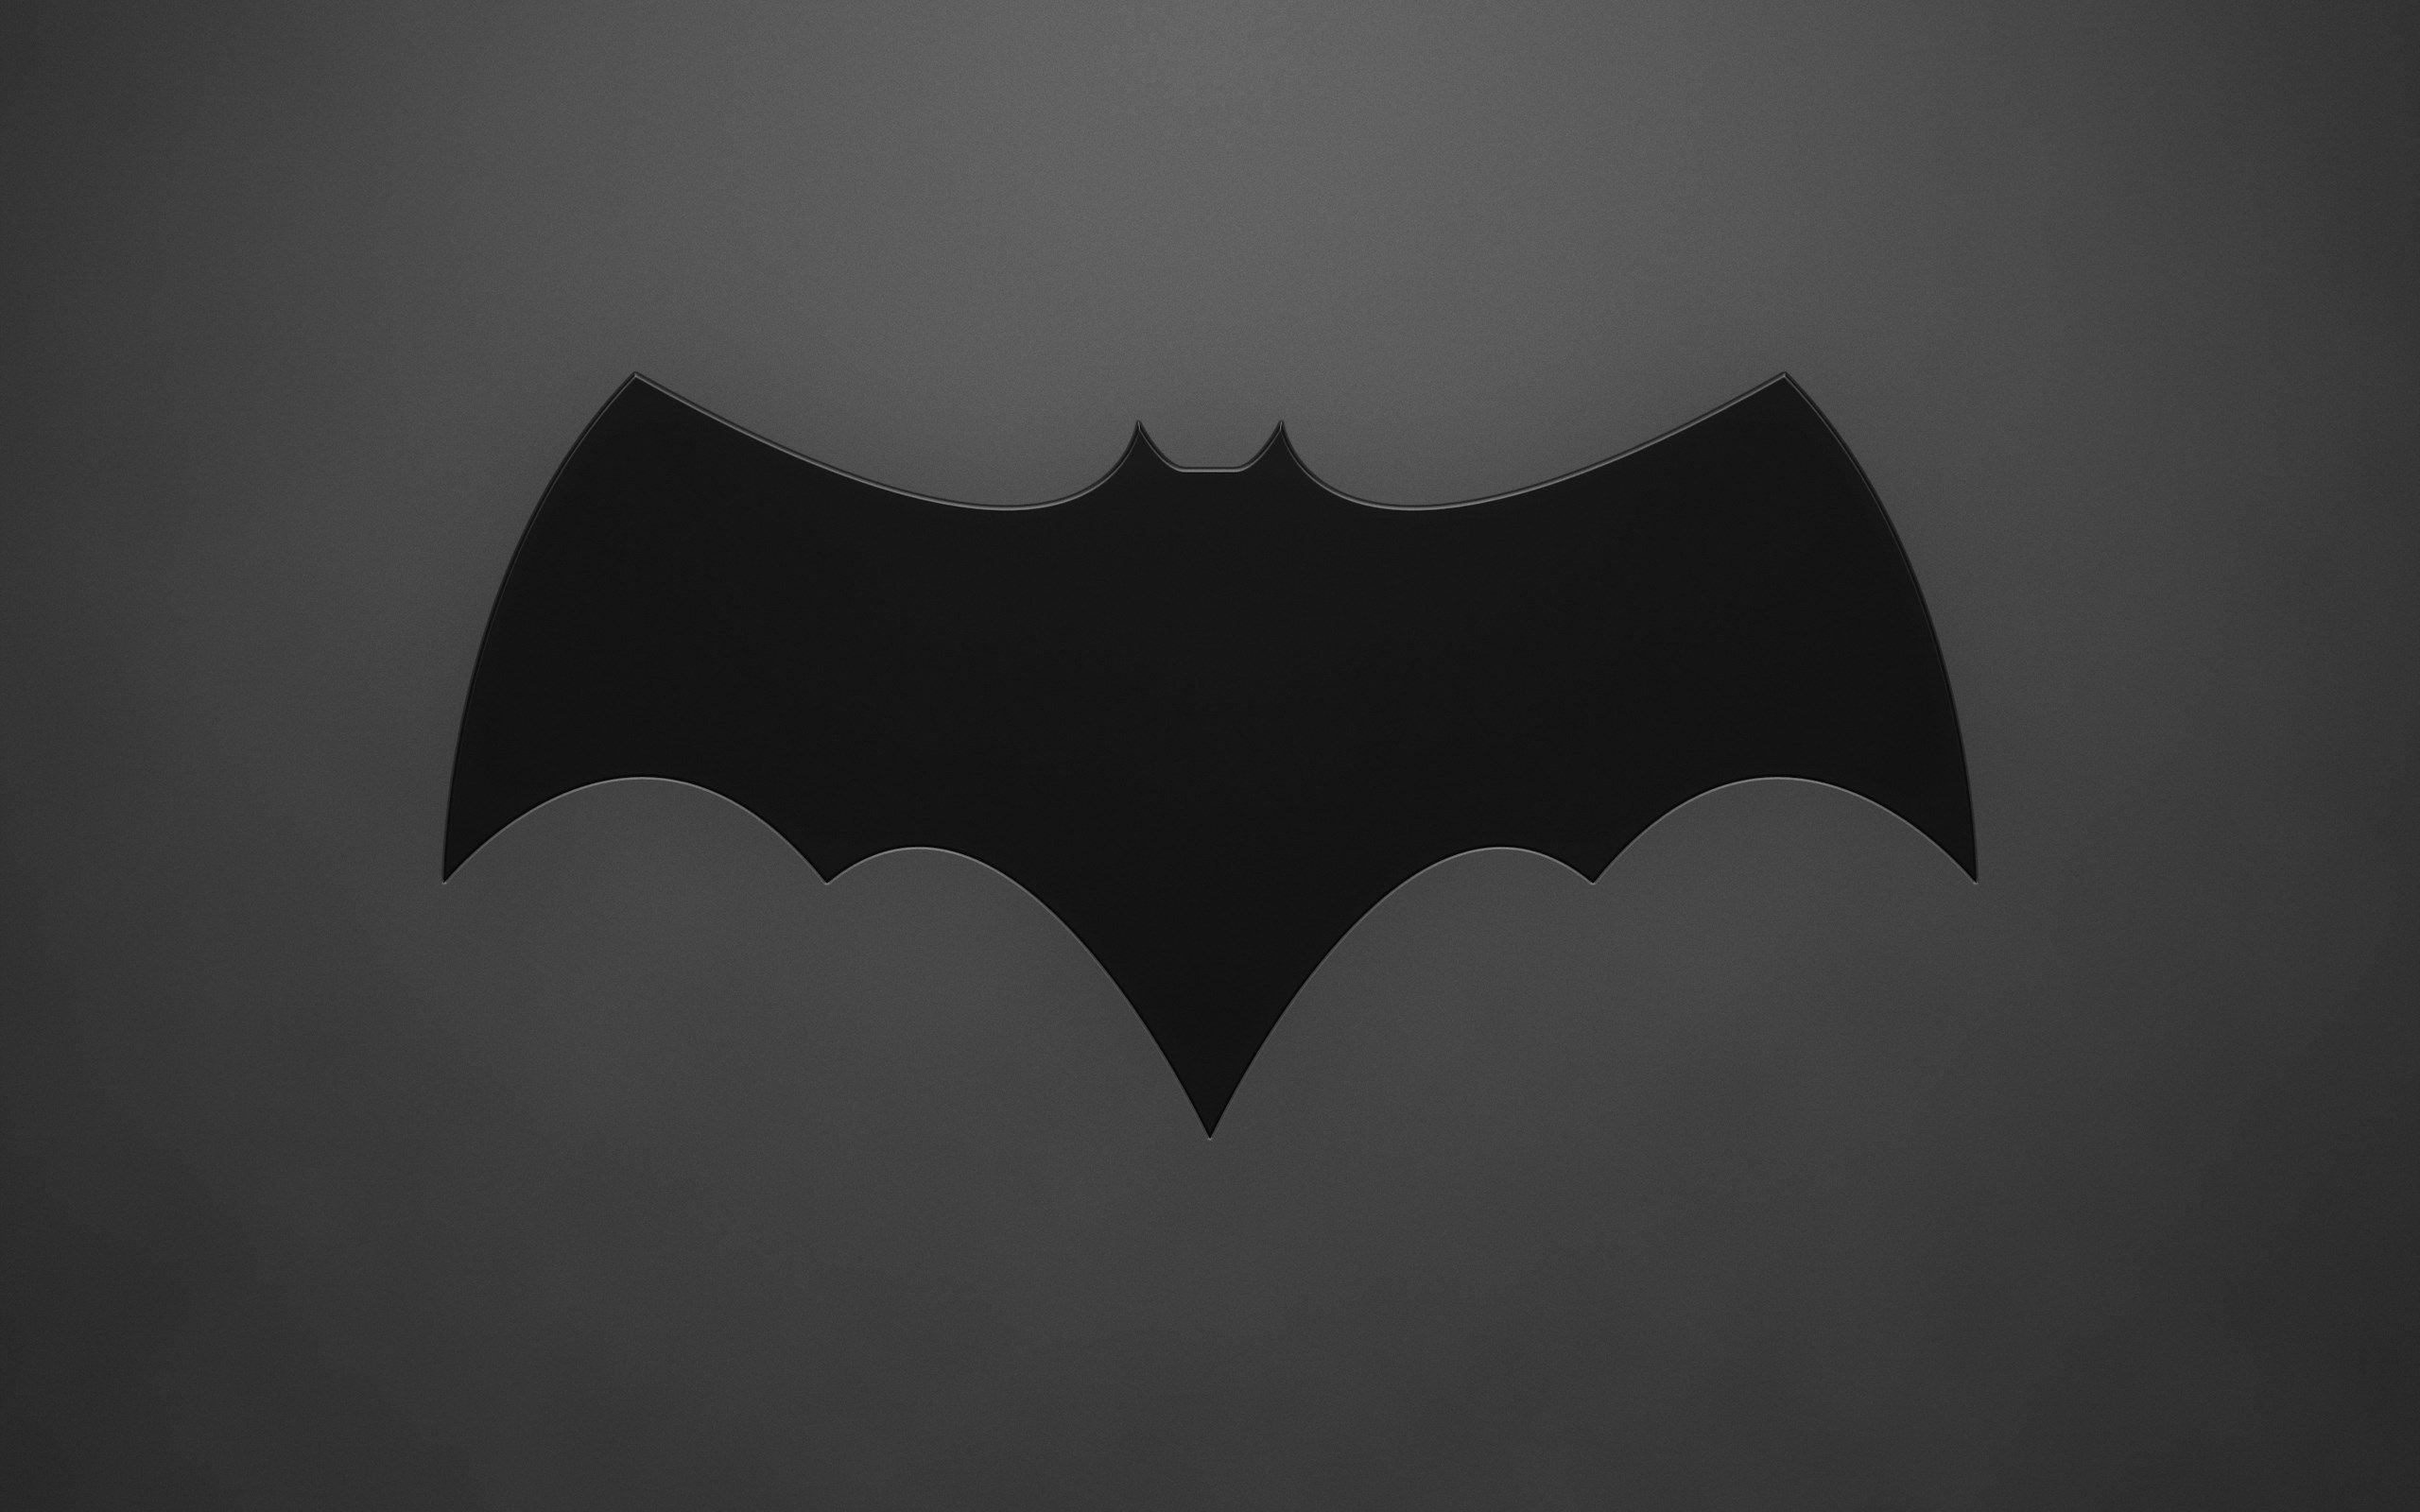 Wallpapers for batman logo wallpapers hd logos marvel vs dc wallpapers for batman logo wallpapers hd voltagebd Choice Image